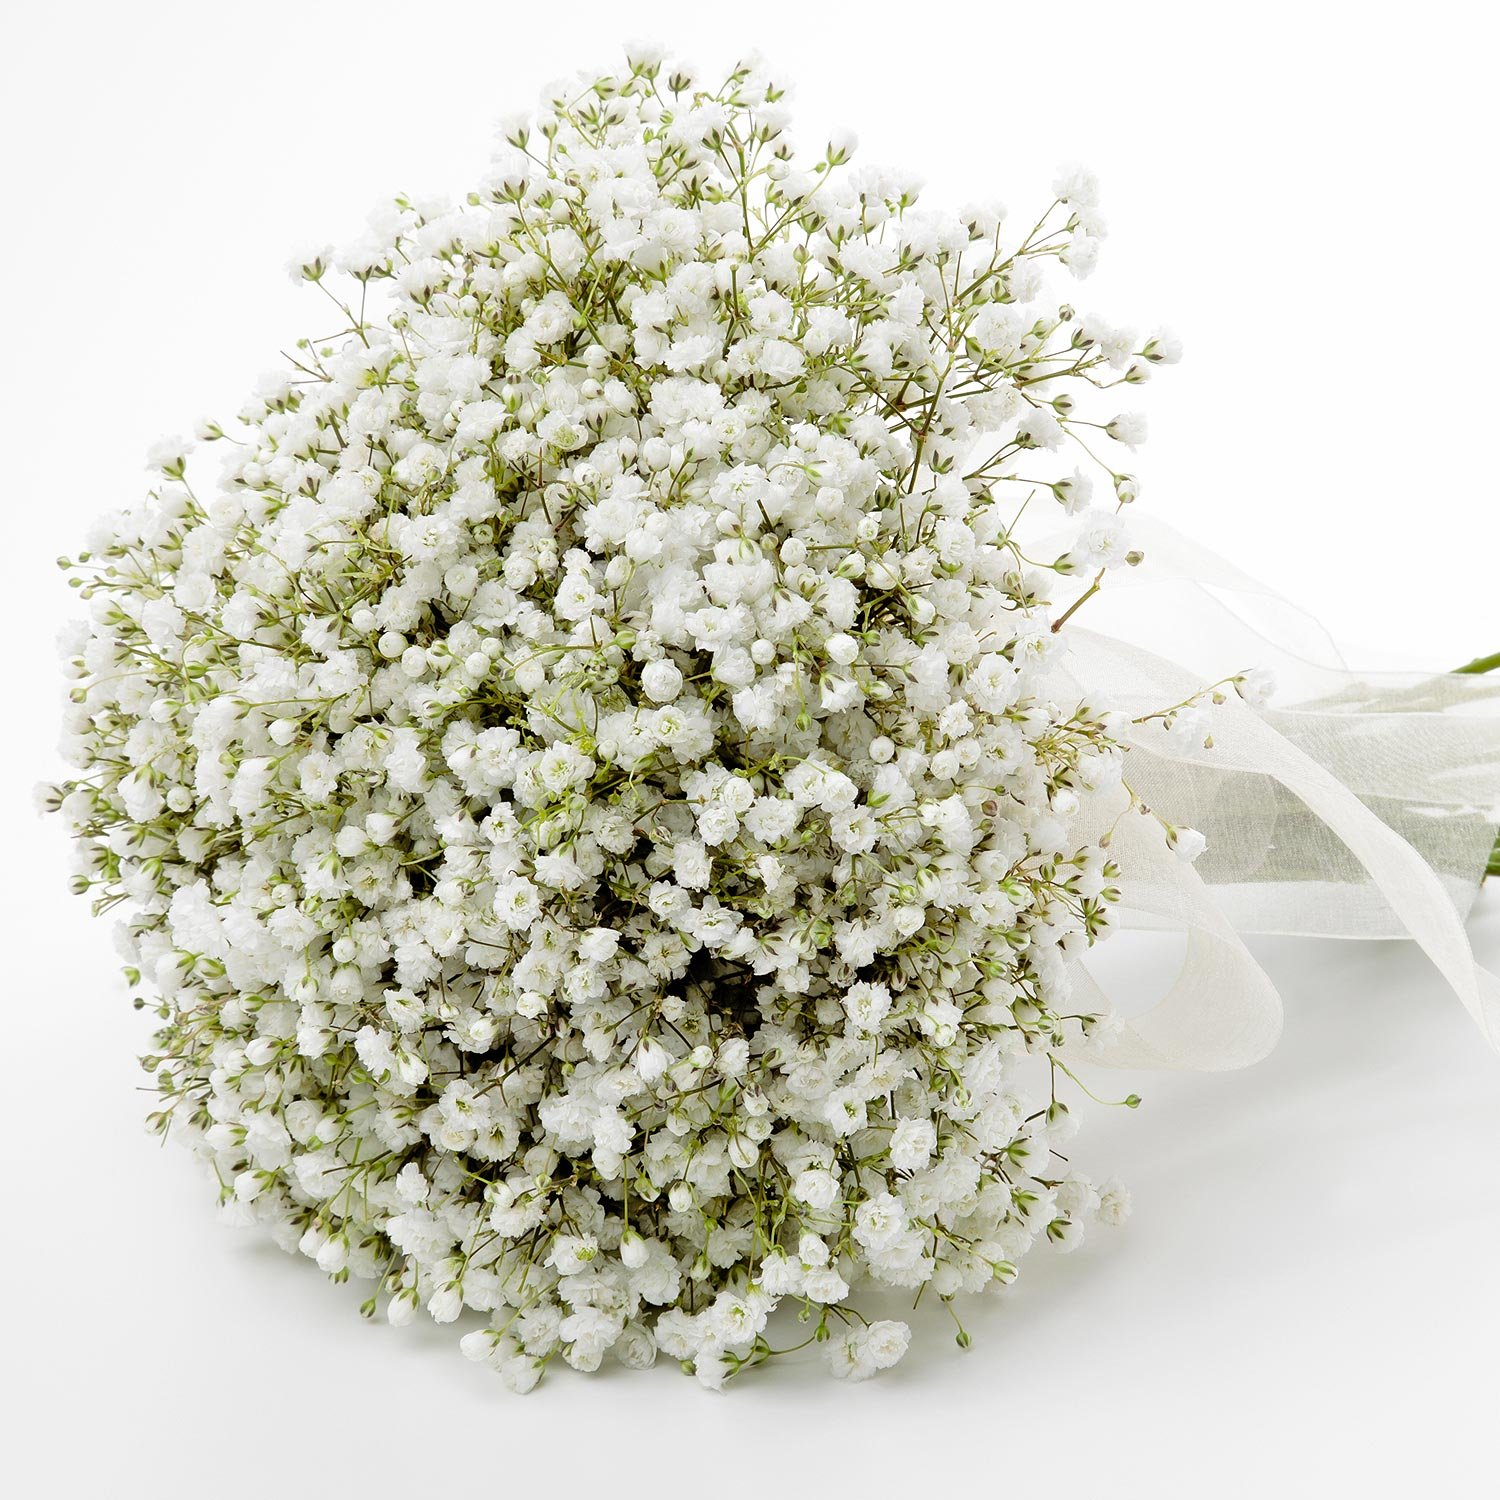 Farm Fresh Natural Million Star Gypsophilia - 8 Bunches